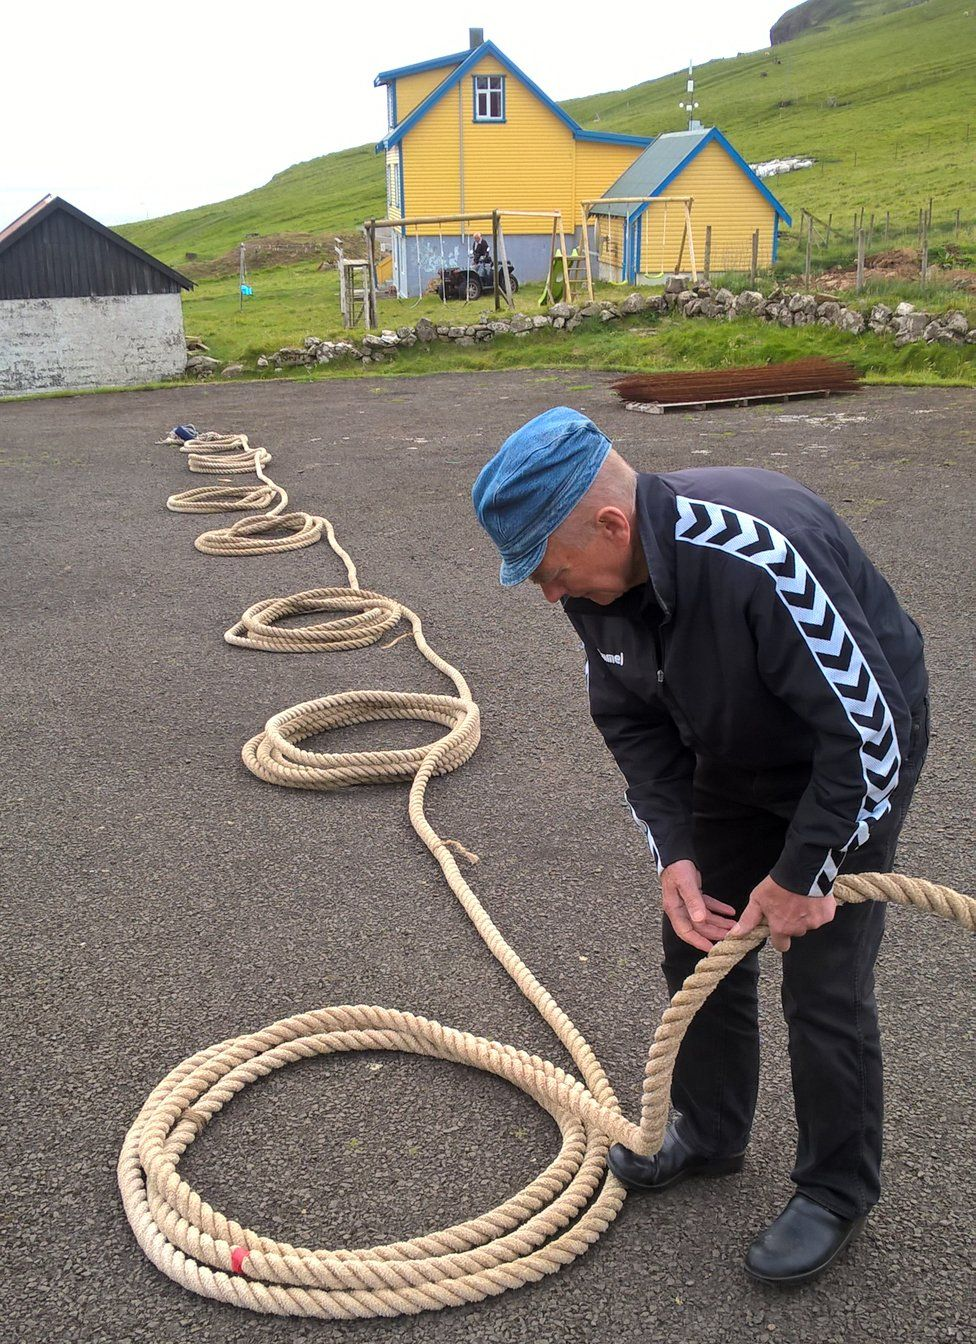 Oscar Joensen lays out the long rope needed for the climb before the village school